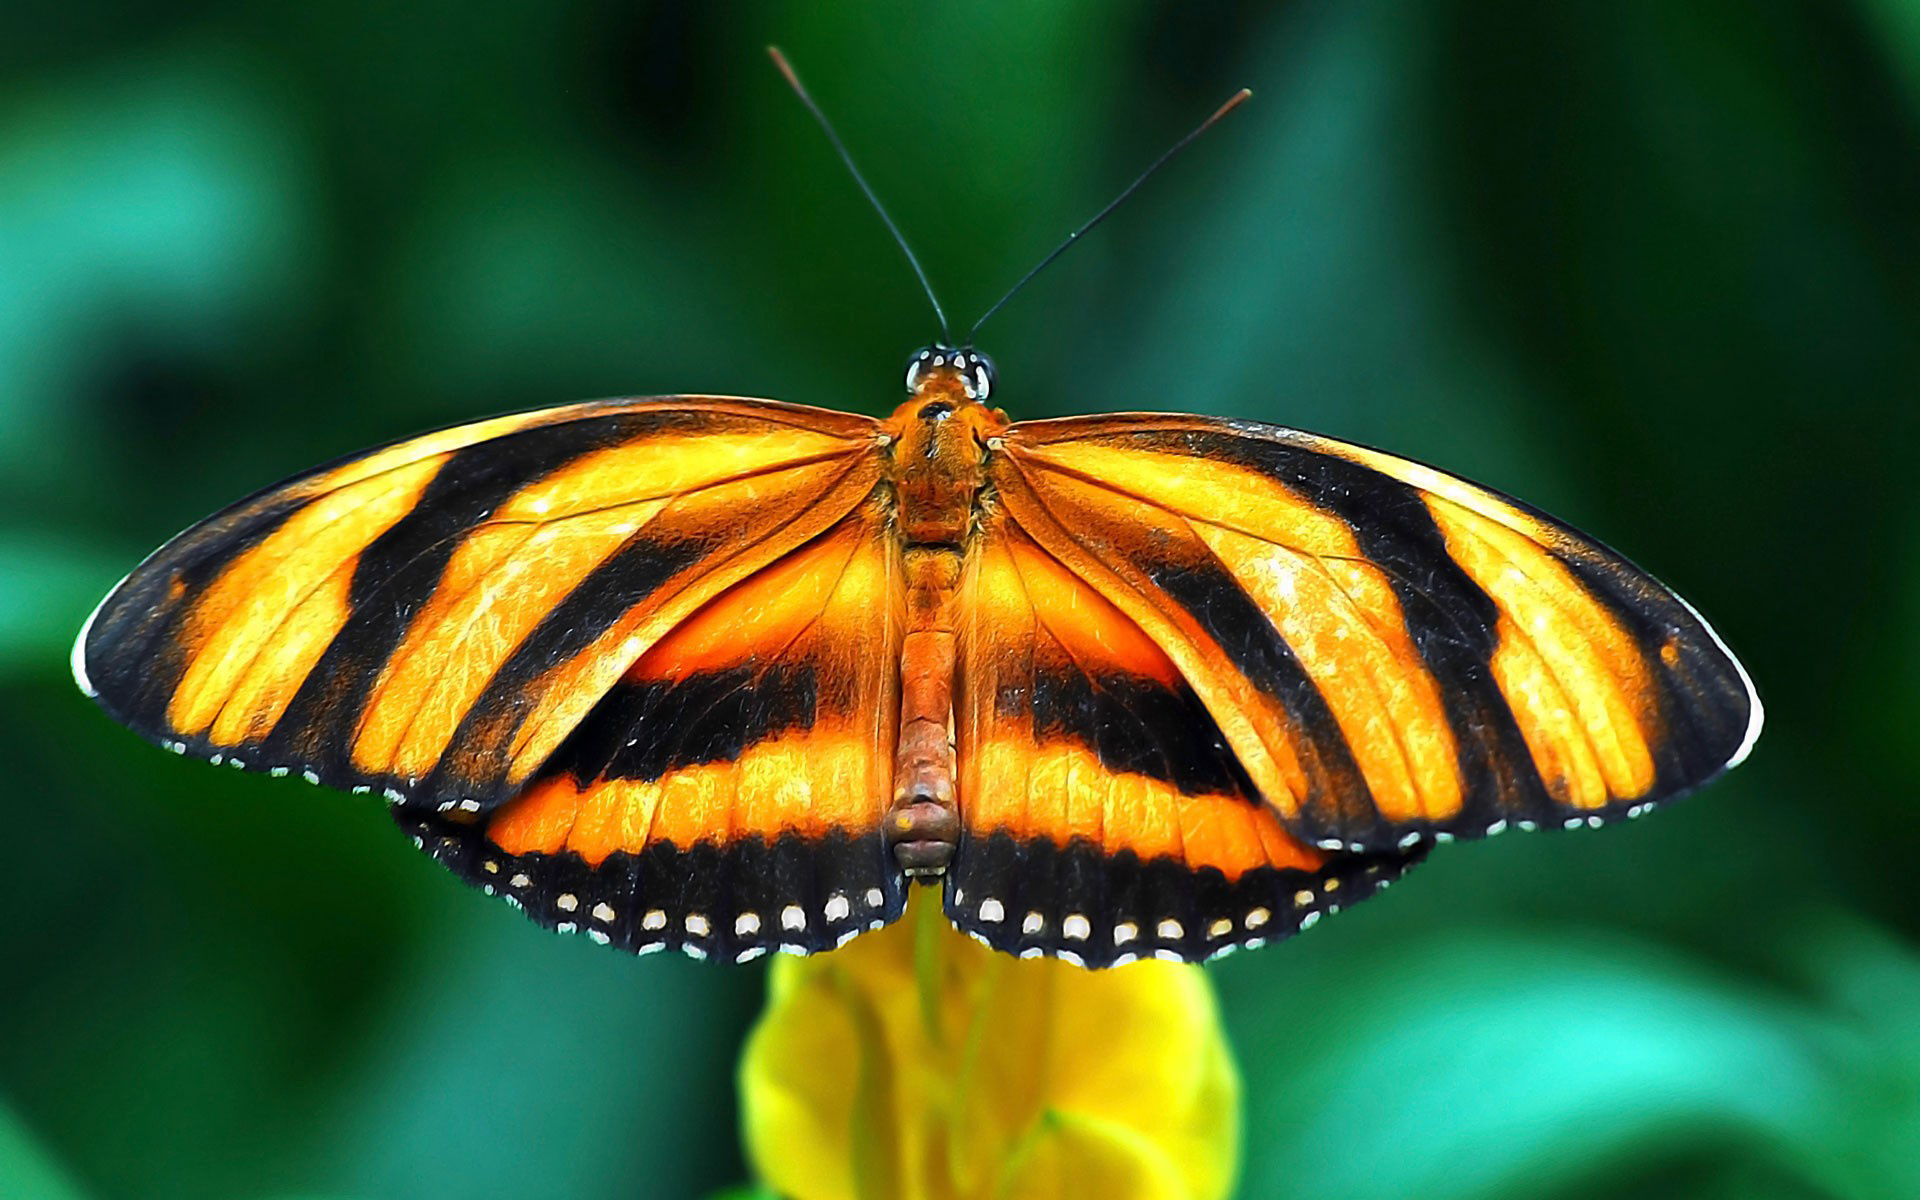 Peace Hd Wallpapers Free Download Yellow And Black Butterfly Animal